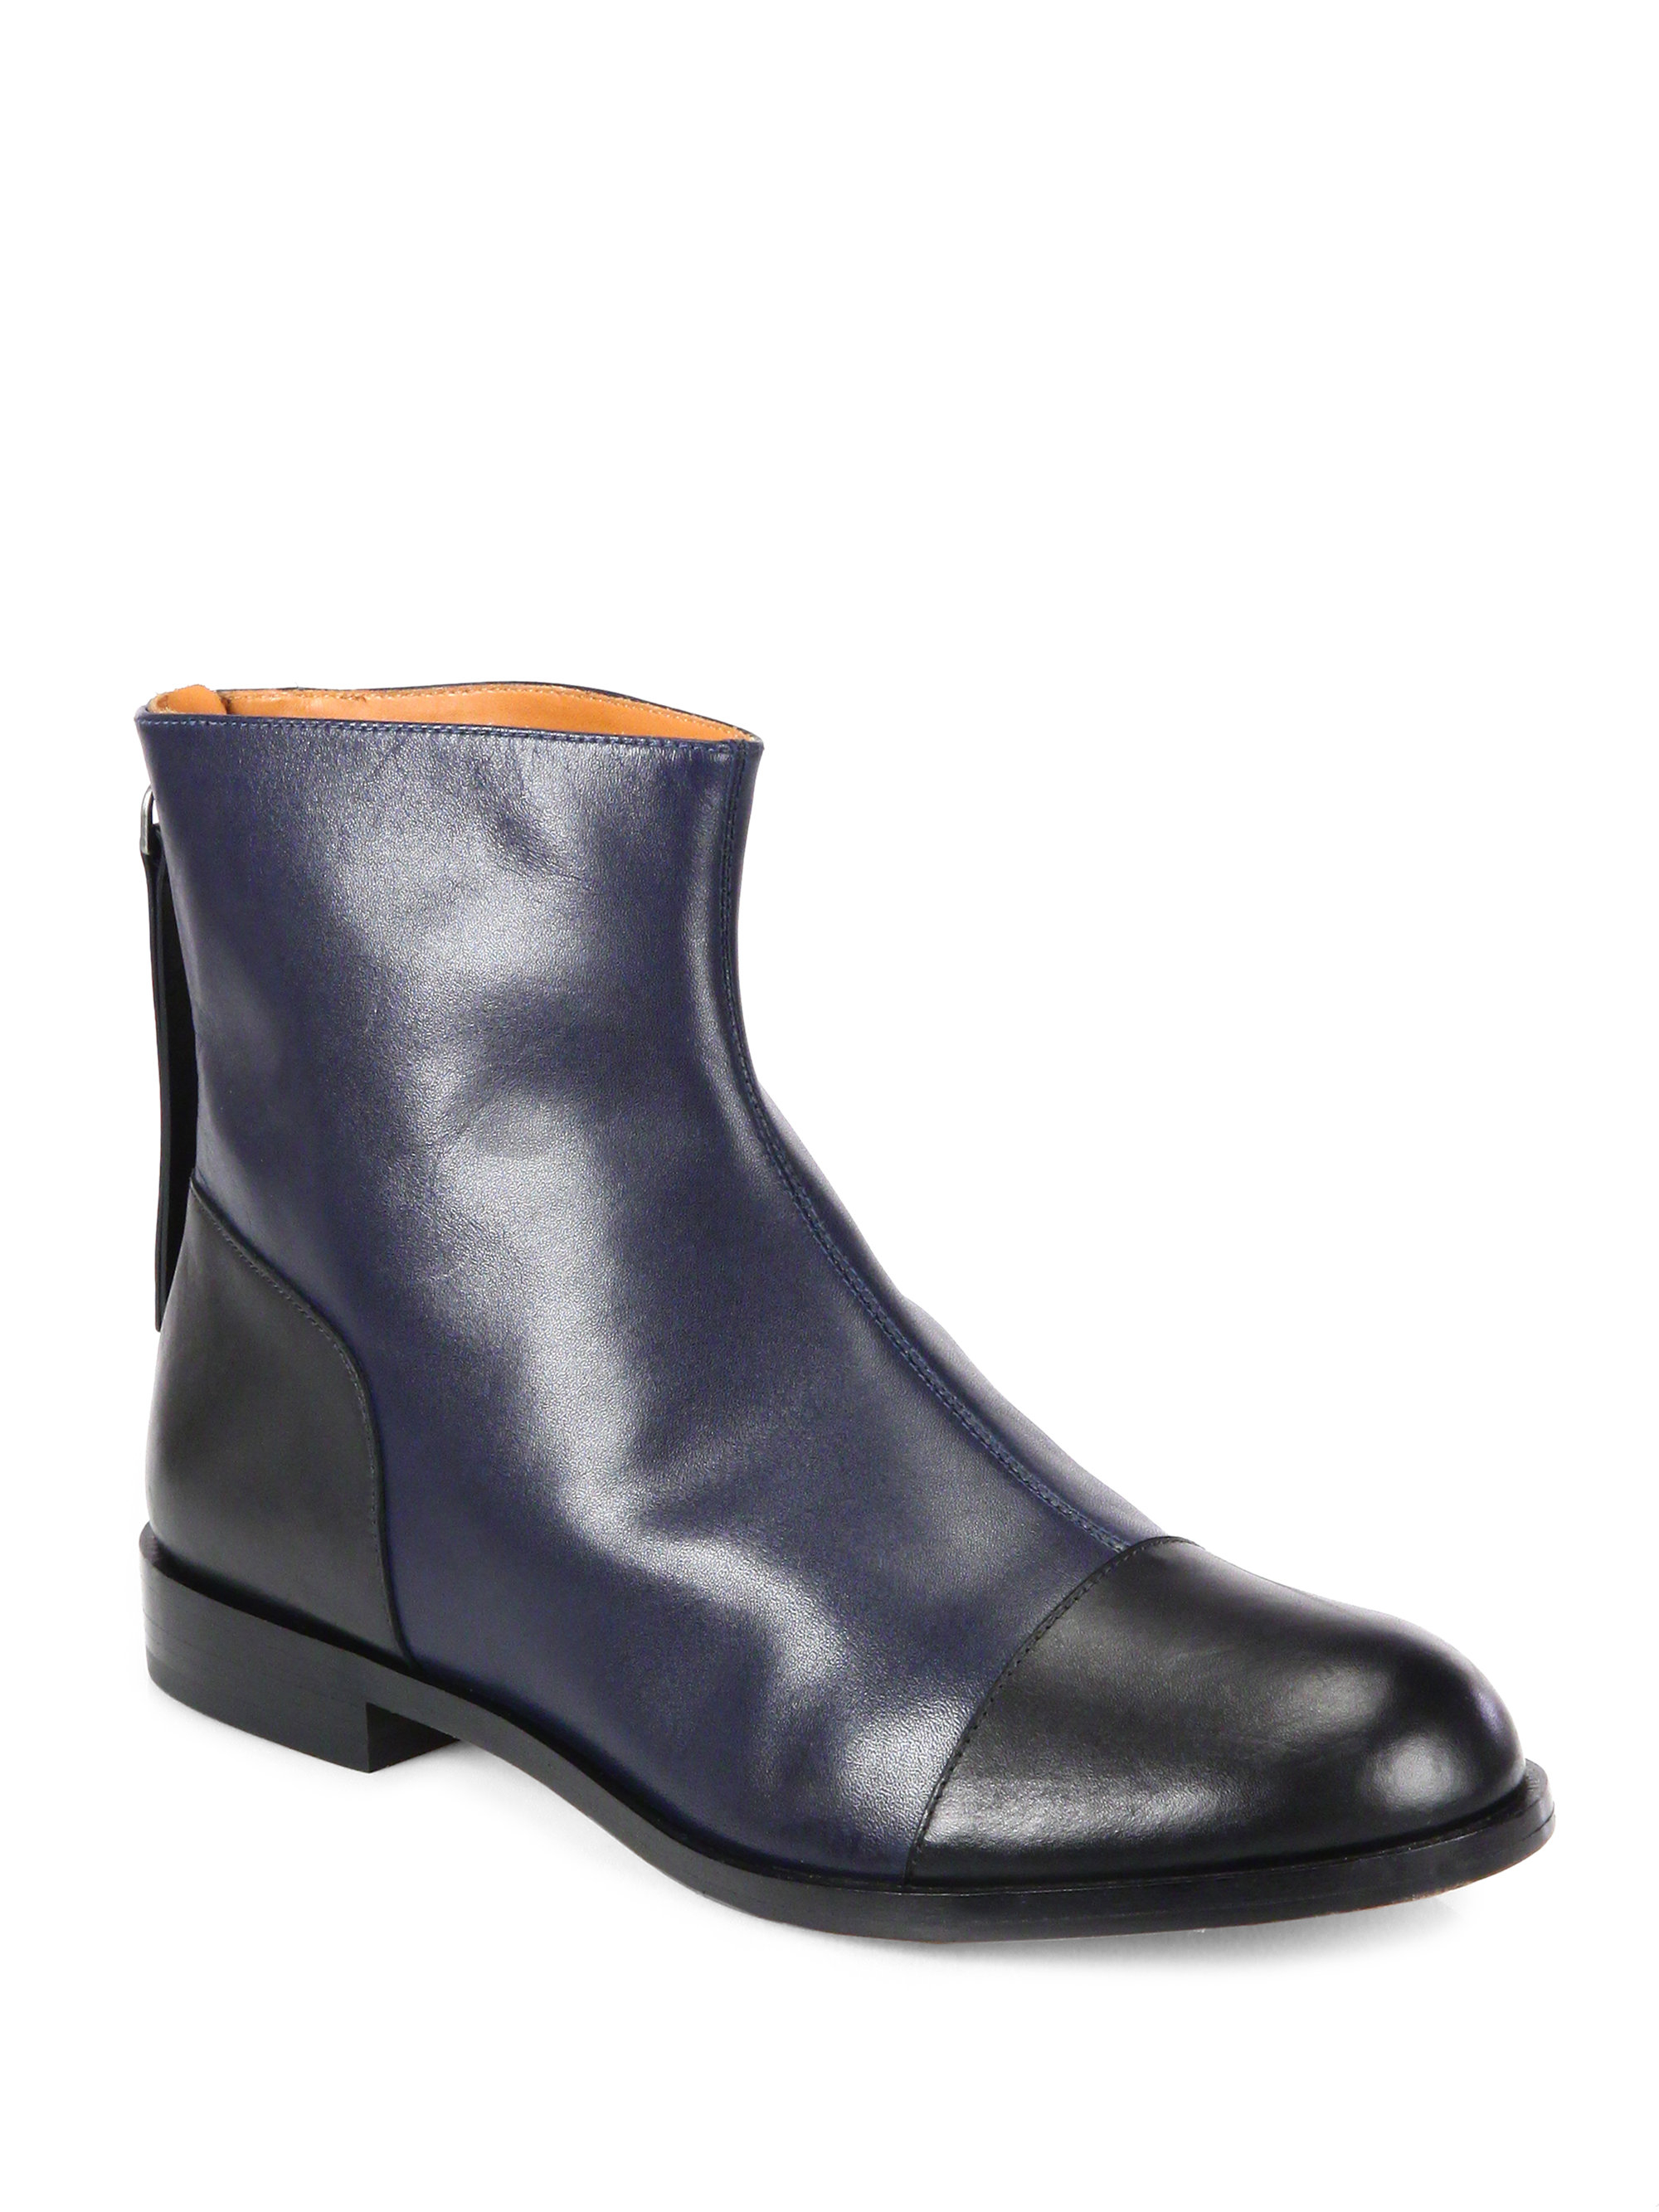 Marc by marc jacobs Flat Leather Ankle Boots in Black | Lyst